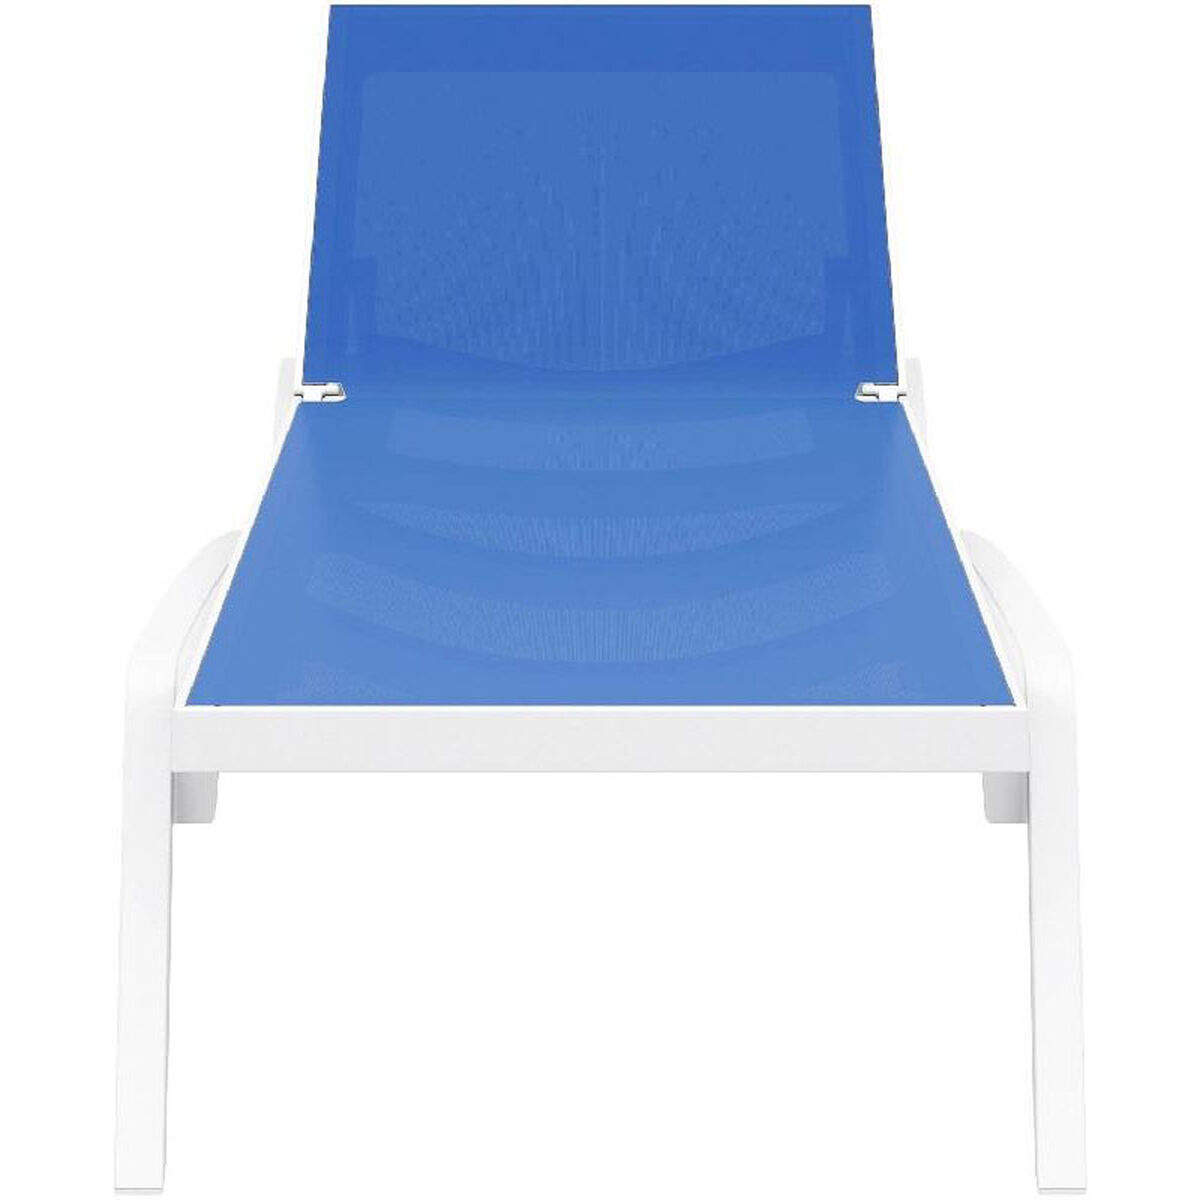 Compamia isp089 whi blu cmp for Blue mesh chaise lounge